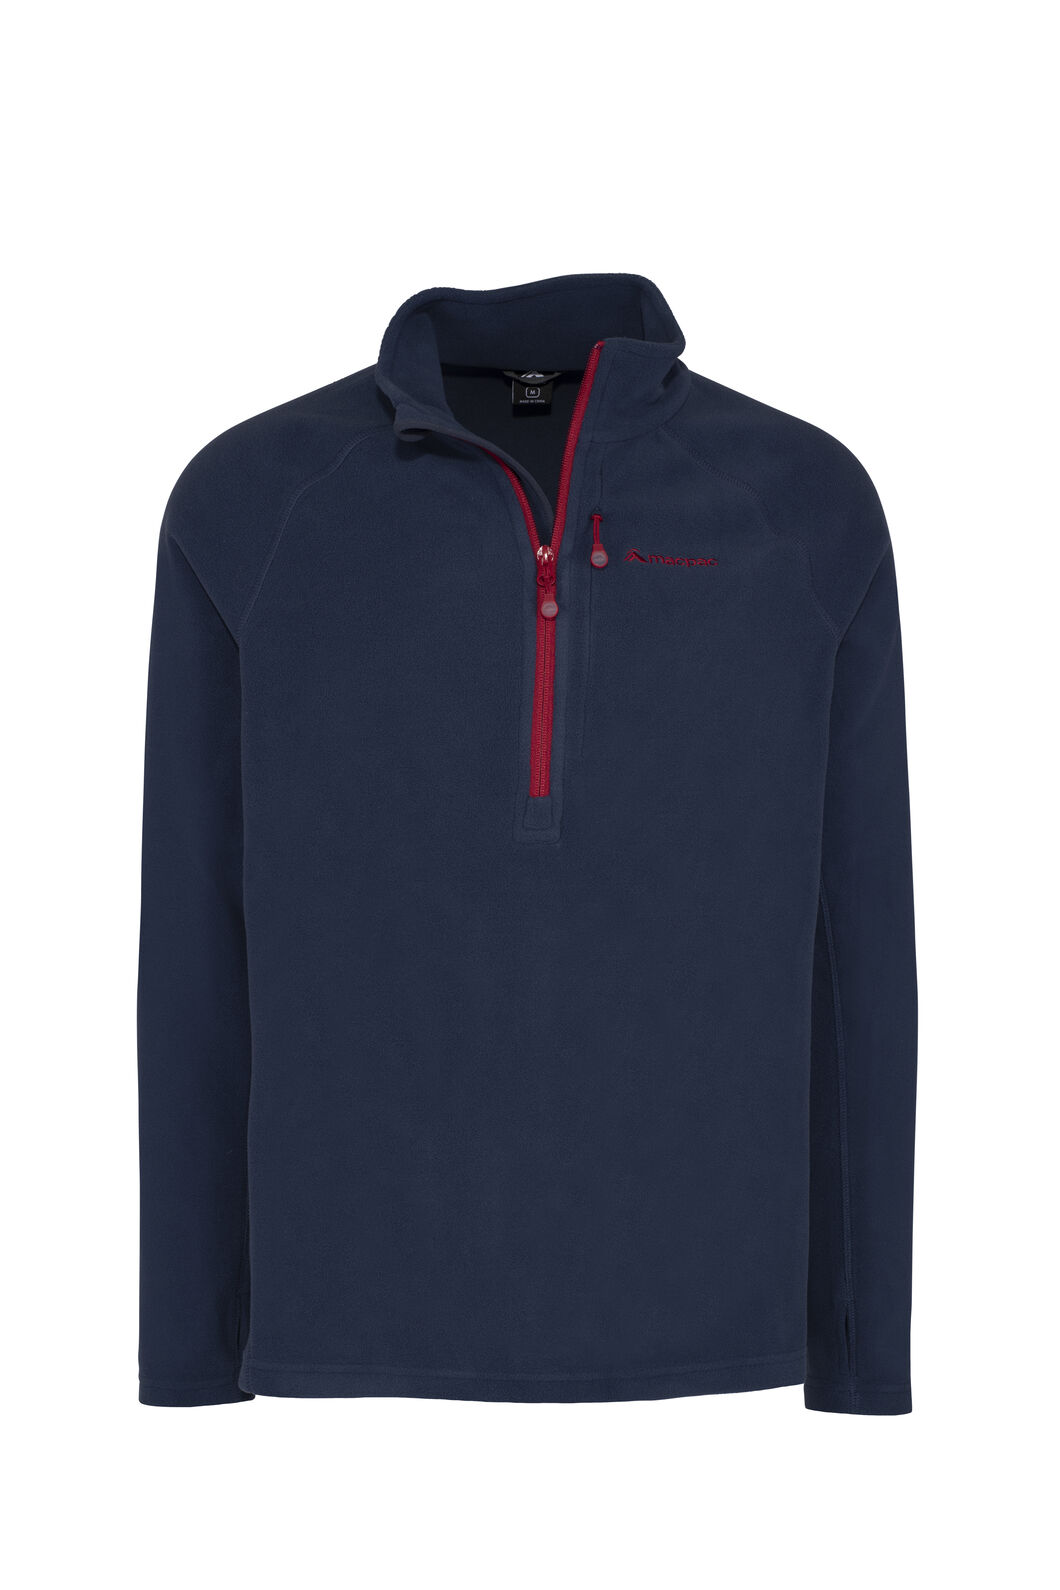 Macpac Tui Polartec® Micro Fleece® Pullover — Men's, Black Iris/Rio Red, hi-res